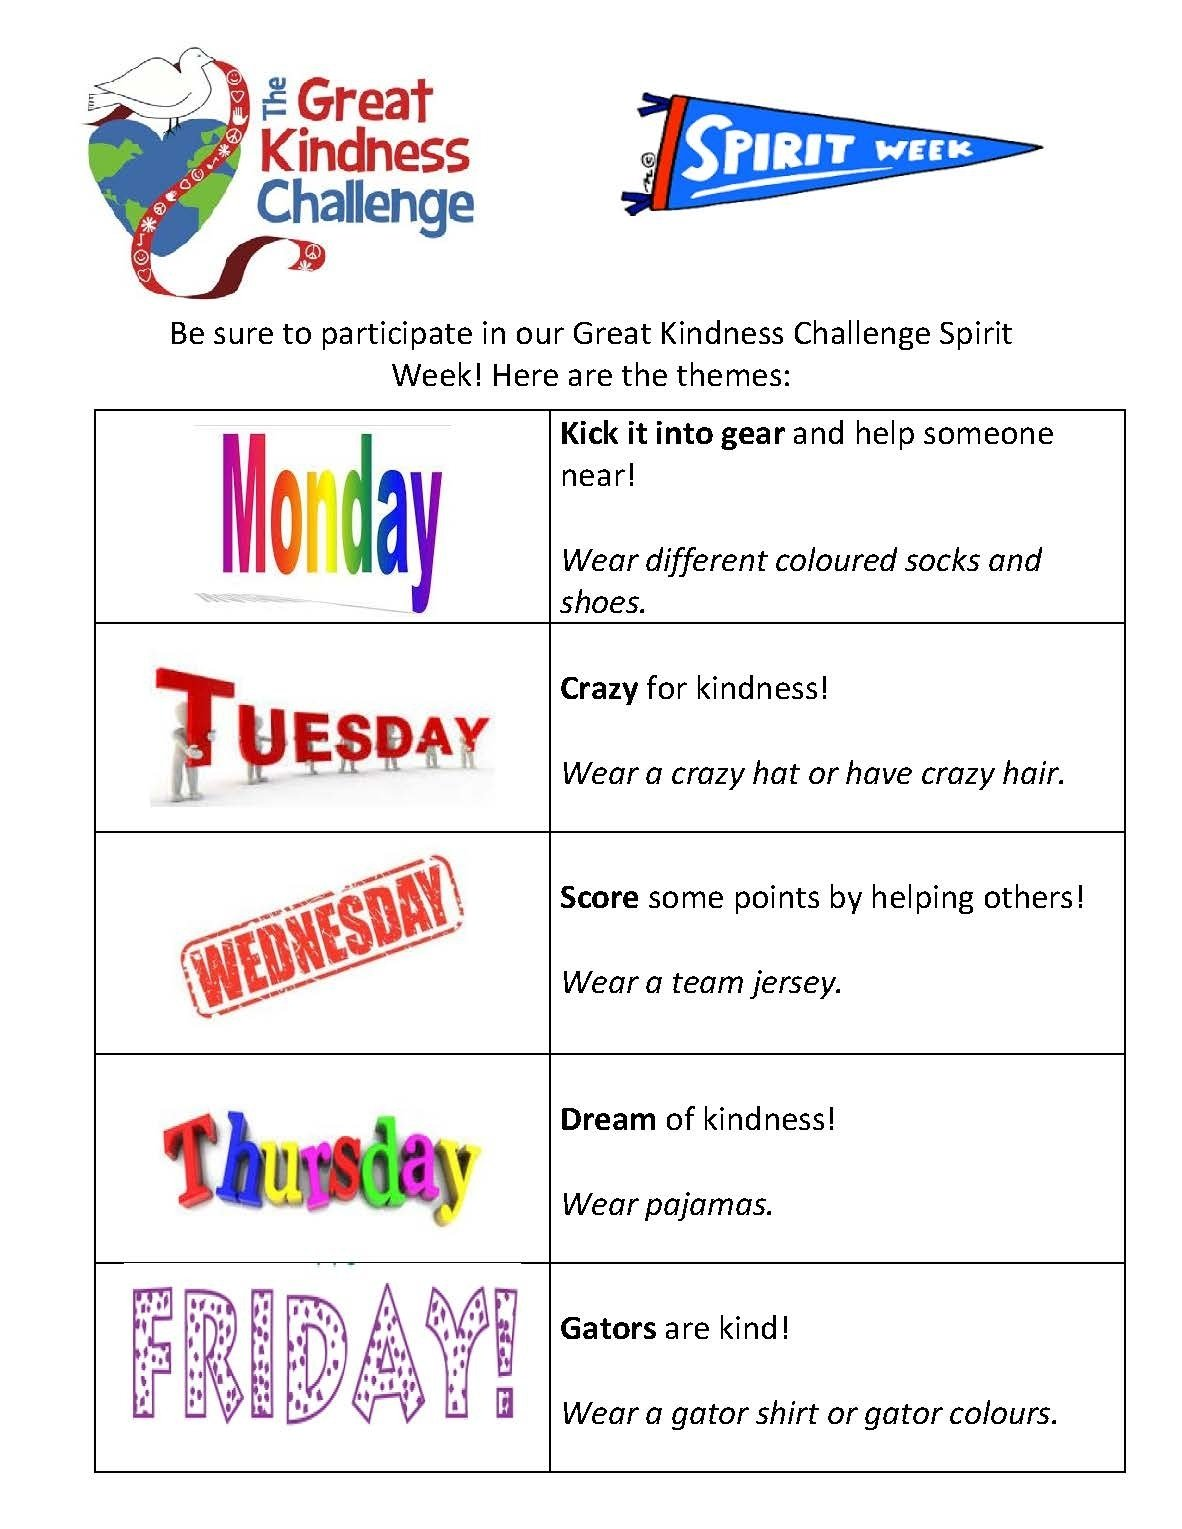 10 Famous Spirit Week Ideas For Middle School ecole golden gate middle school spirit week january 23 27 2020